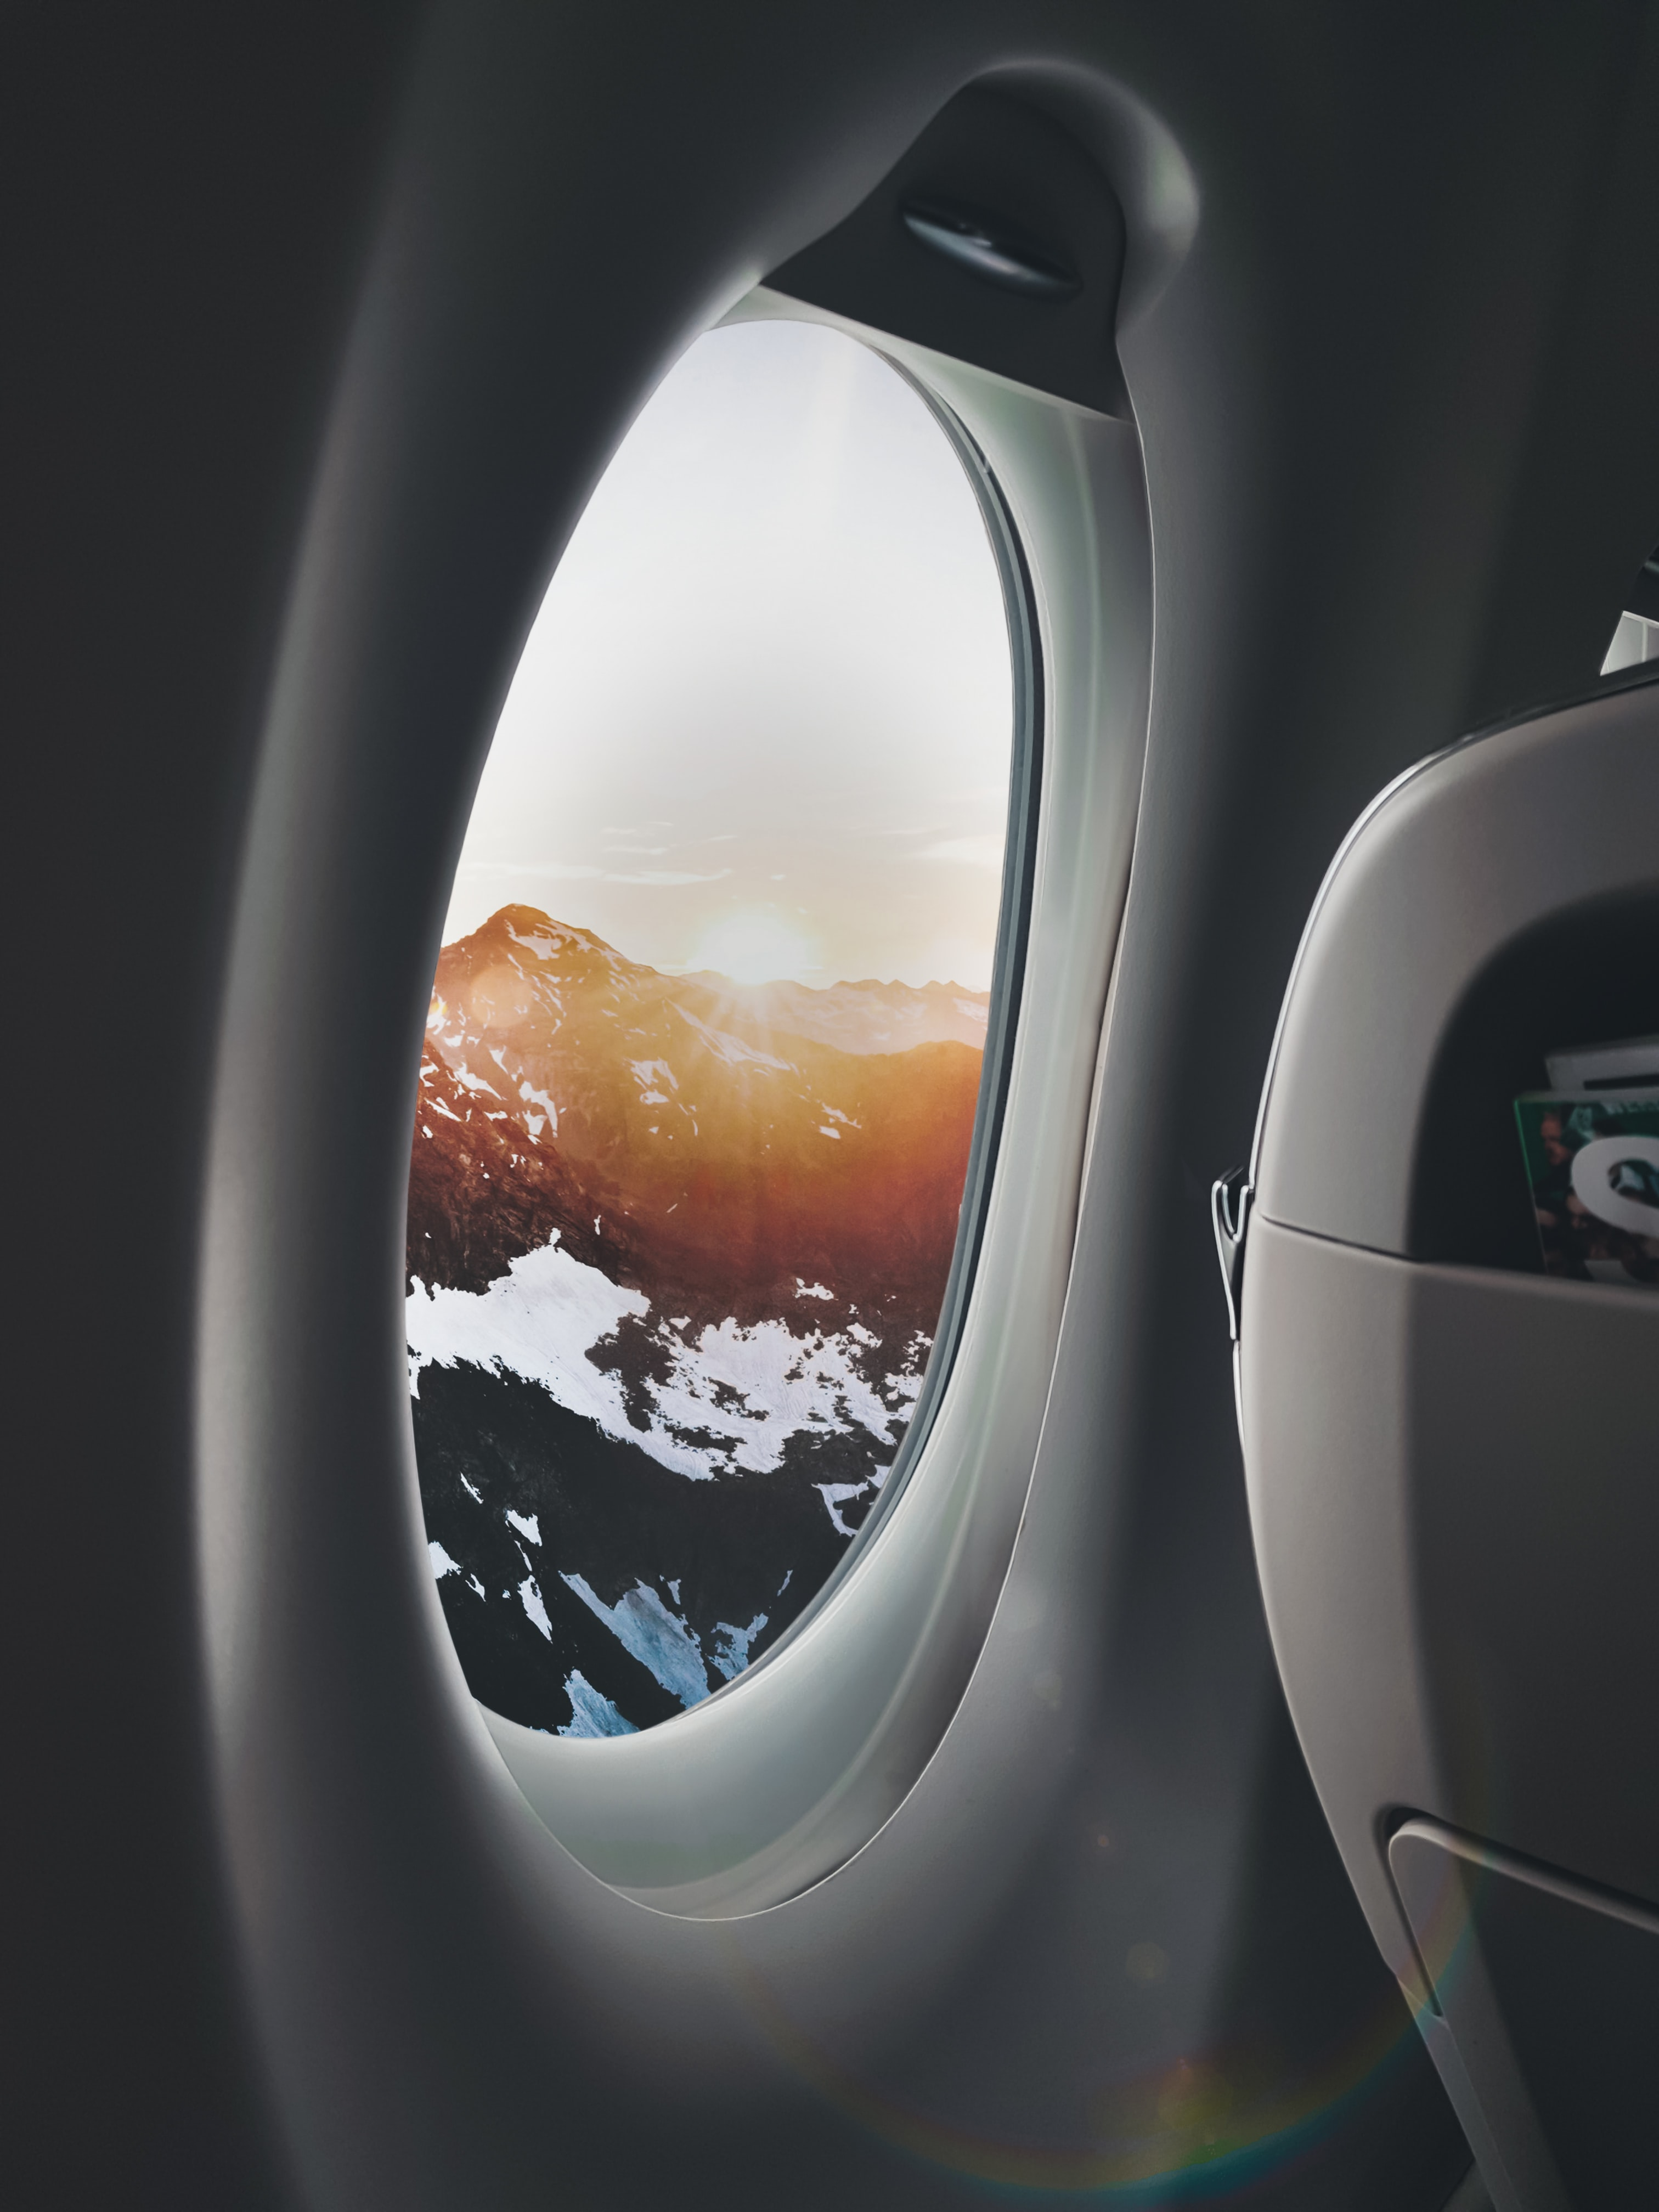 plane window showing mountain